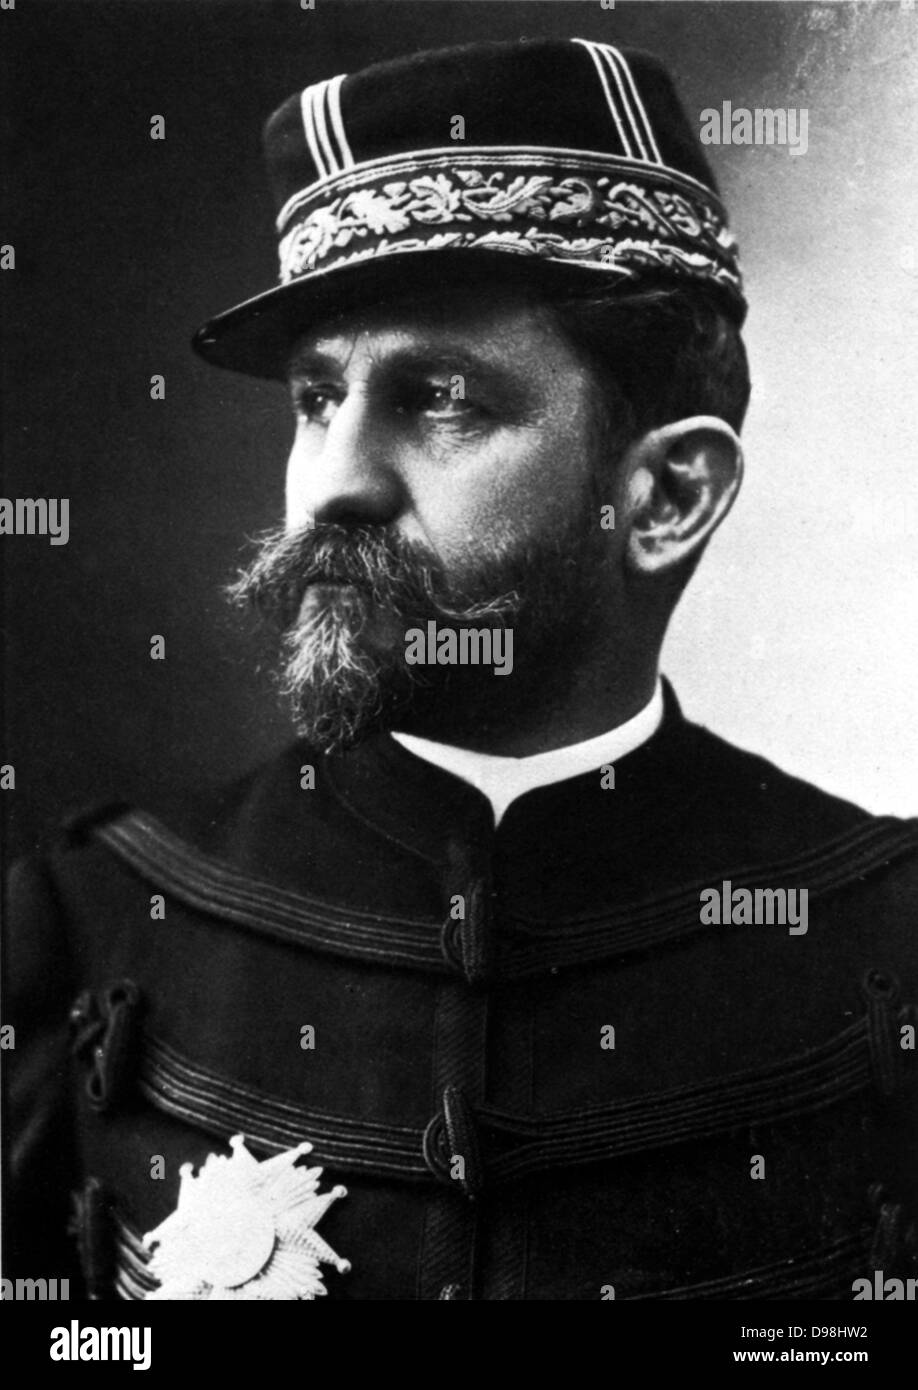 Georges Ernest Jean-Marie Boulanger (April 29, 1837 – September 30, 1891) was a French general and reactionary politician. - Stock Image